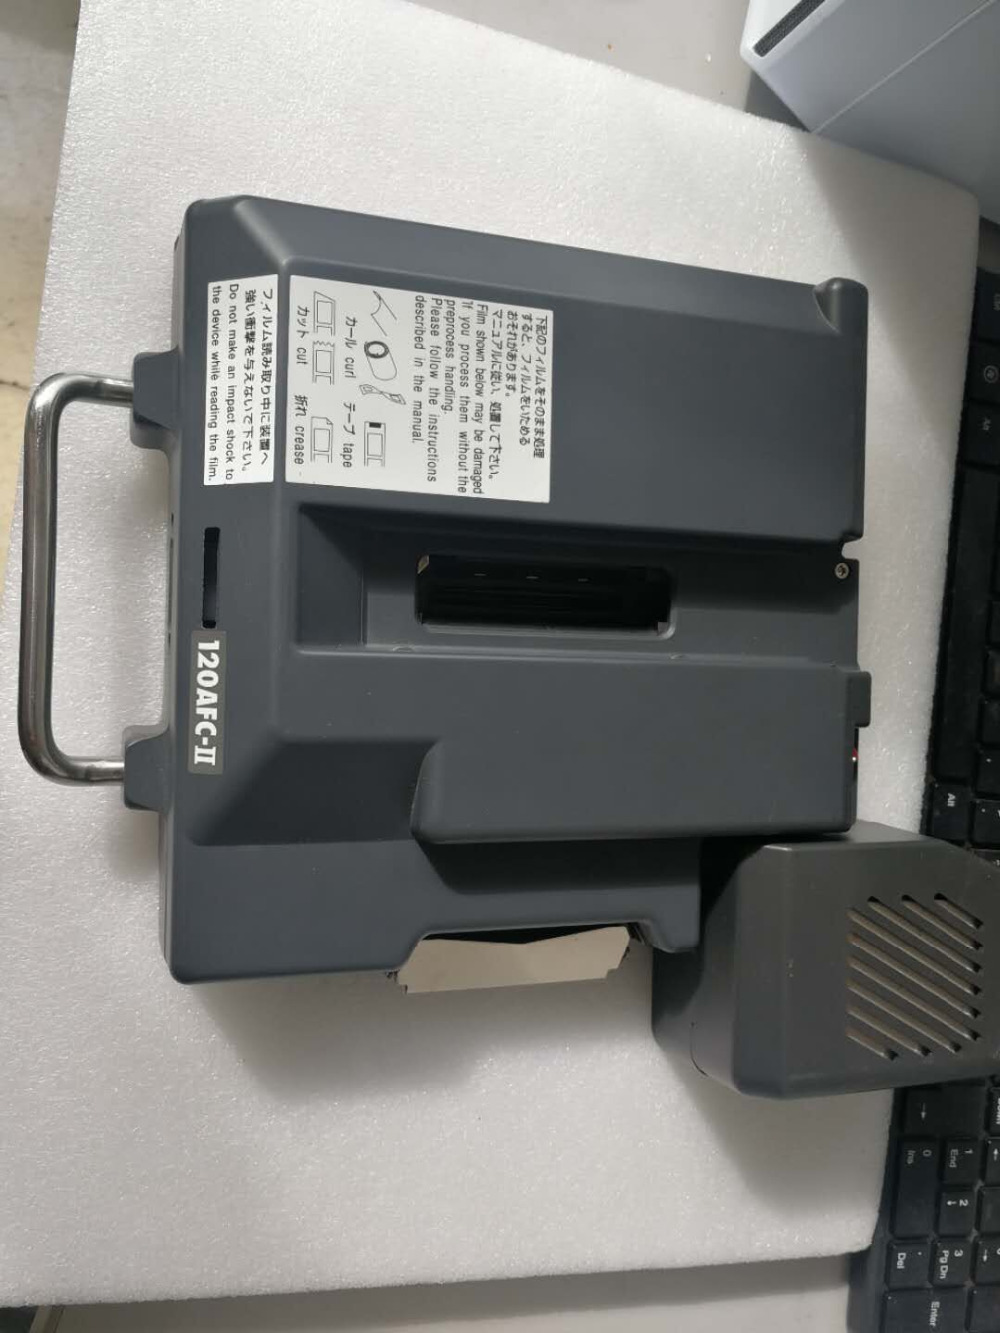 US $13999 0  Used Noritsu film scanner HS1800 / HS 1800 with 120/135 film  carrier,EZ Controller Software and Dongle,good working condition-in Photo